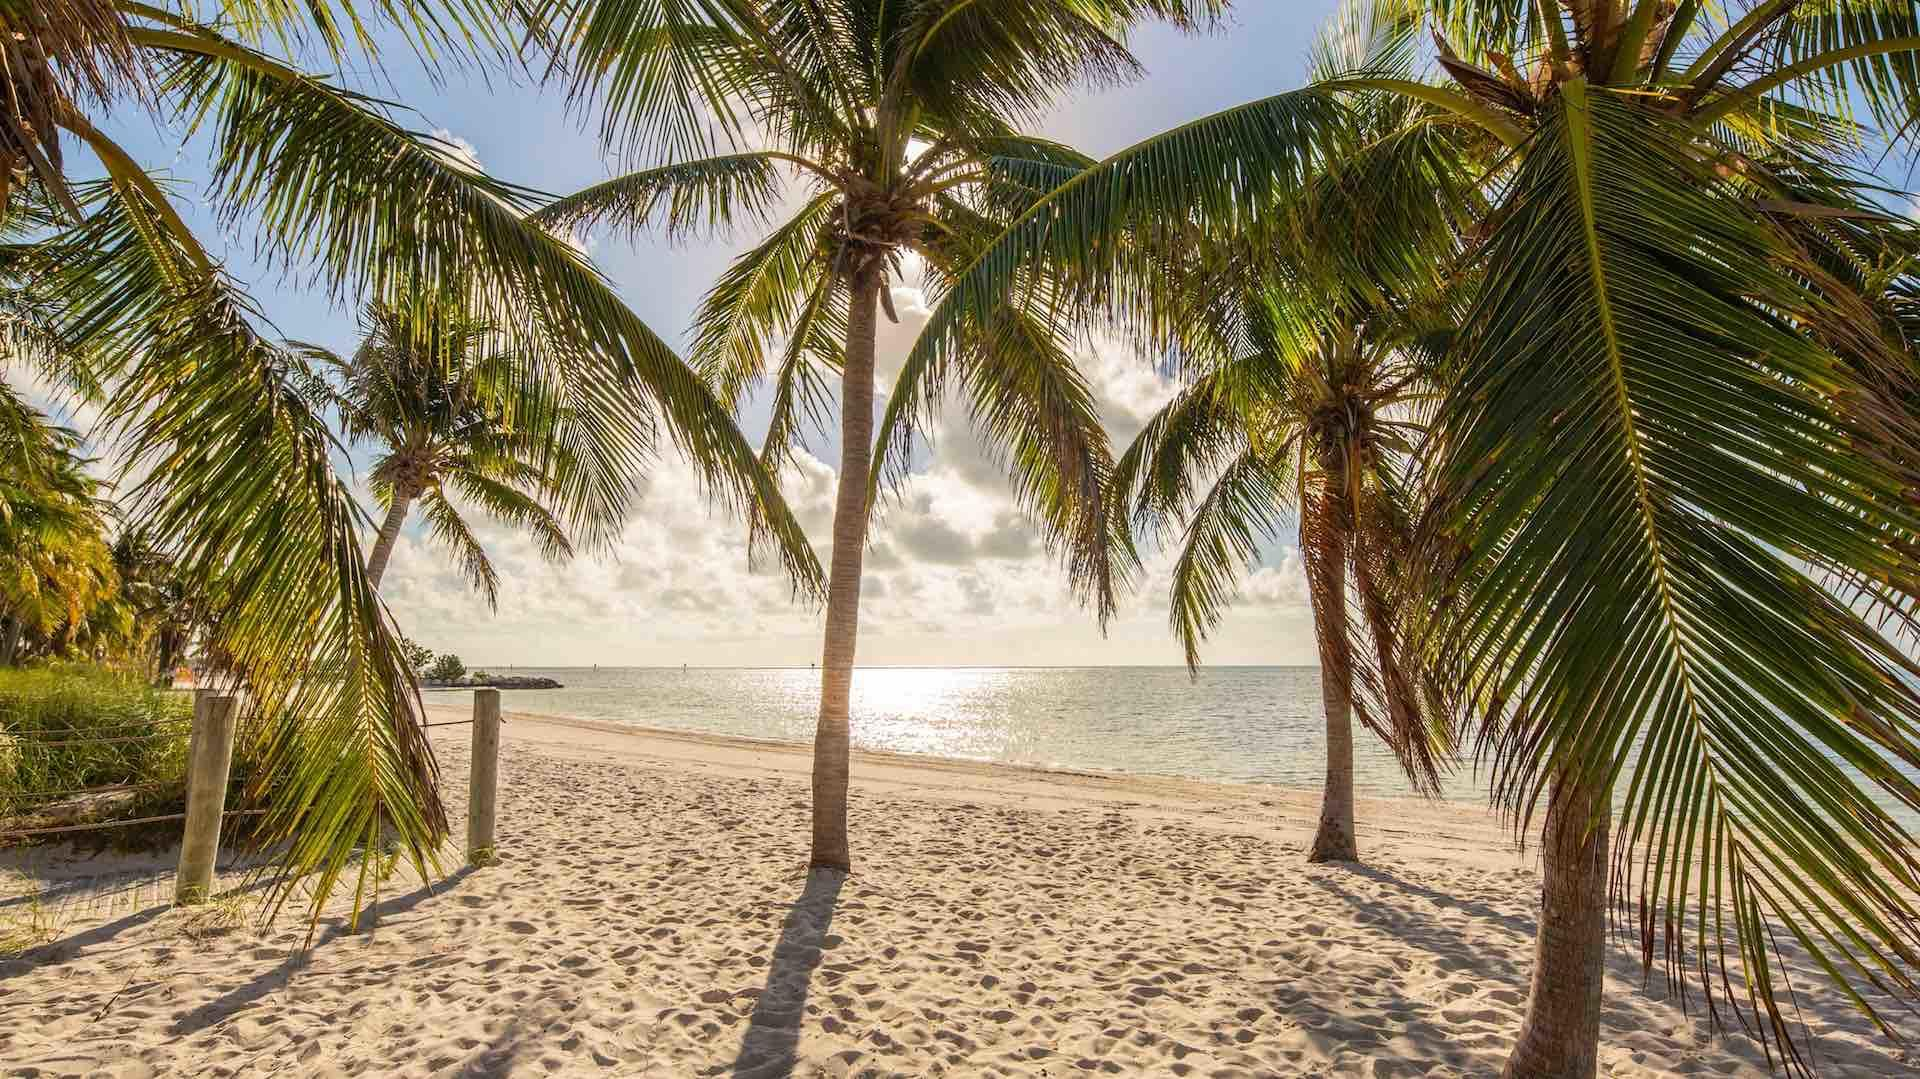 Experience a Key West sunset from the beach during your stay...